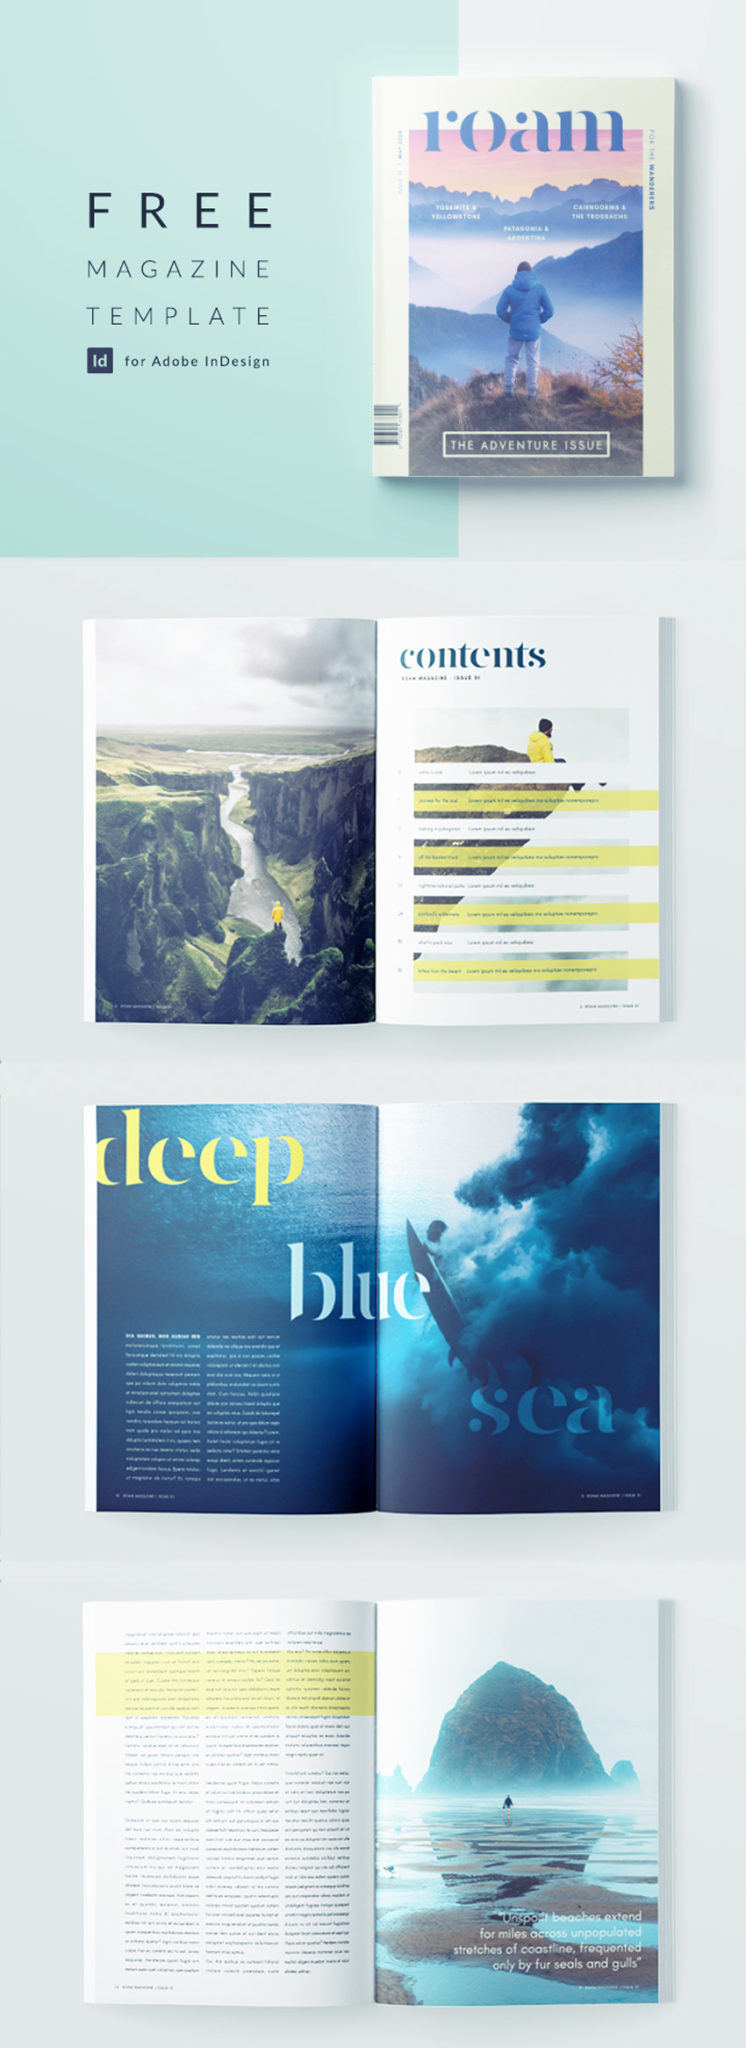 free indesign magazine template - download this professionally designed template for an indesign travel magazine